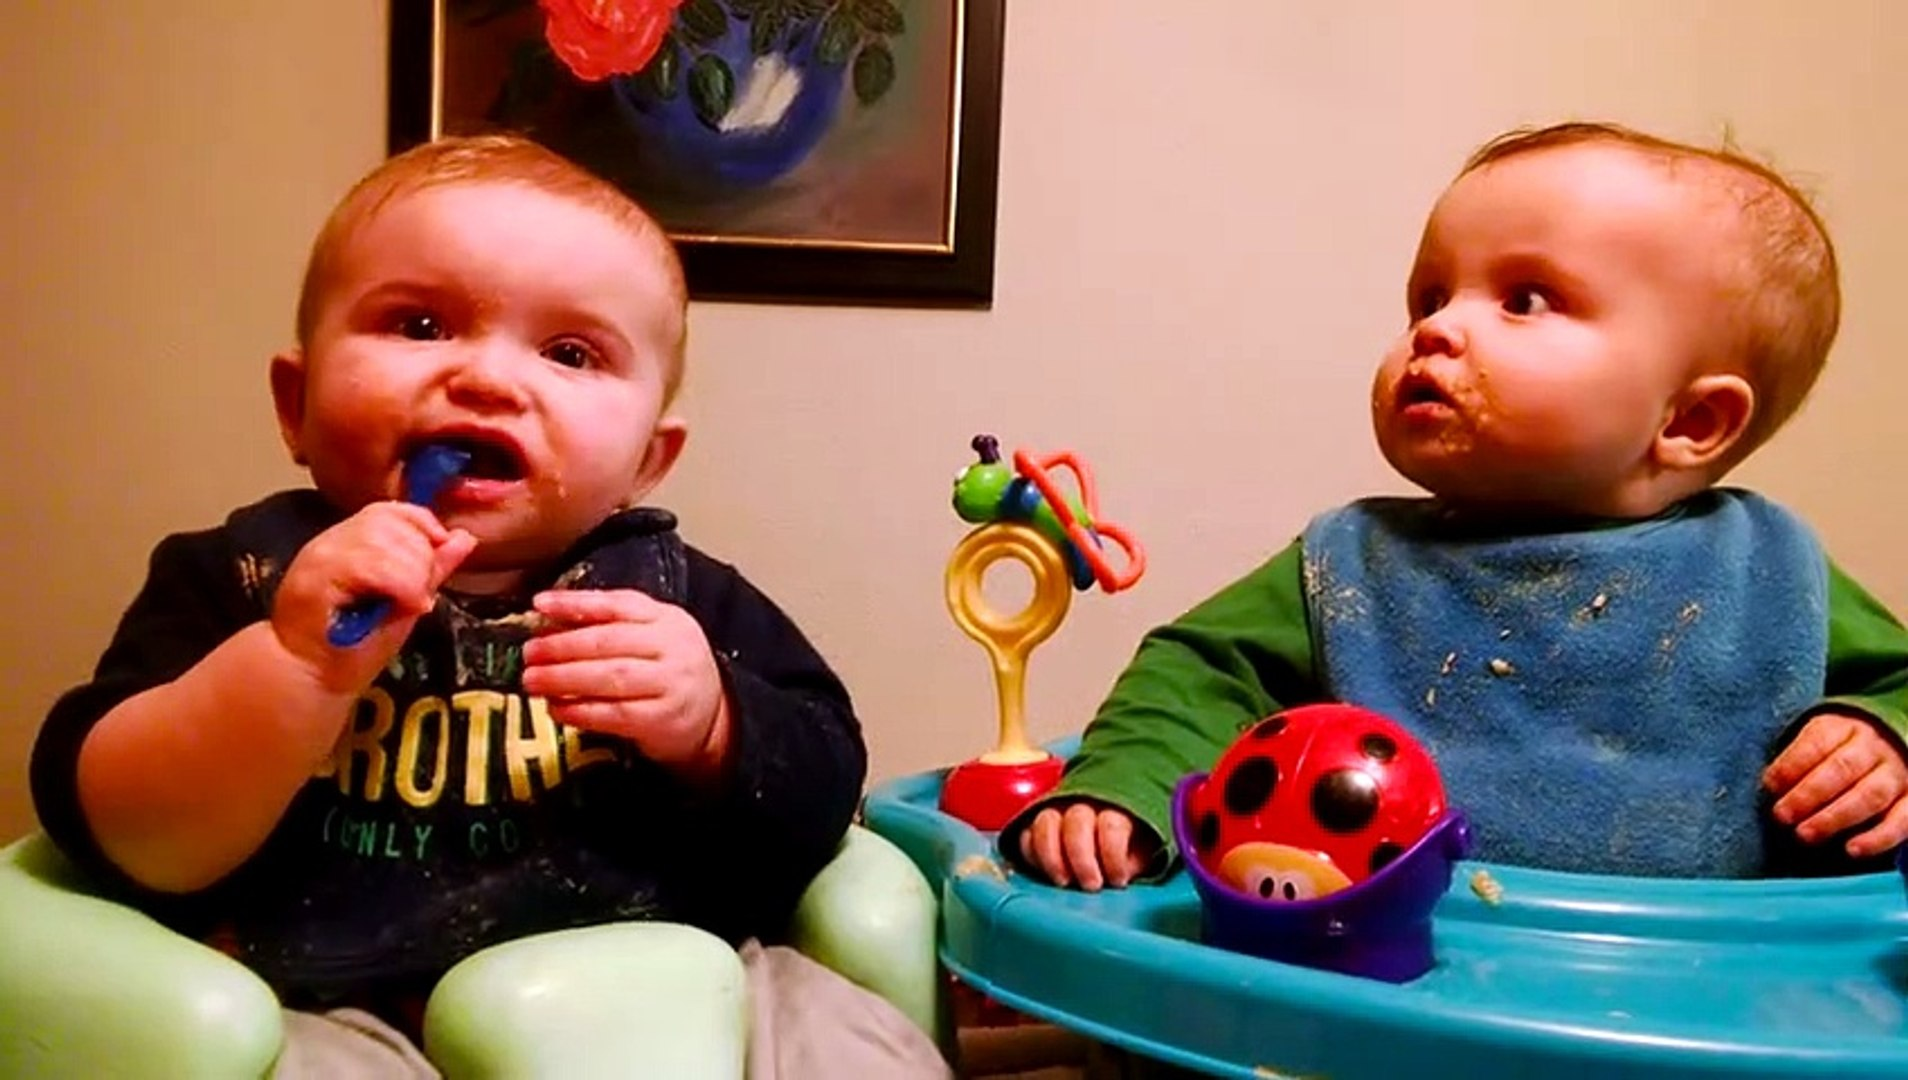 Cute Twins Baby Funny Cute Video